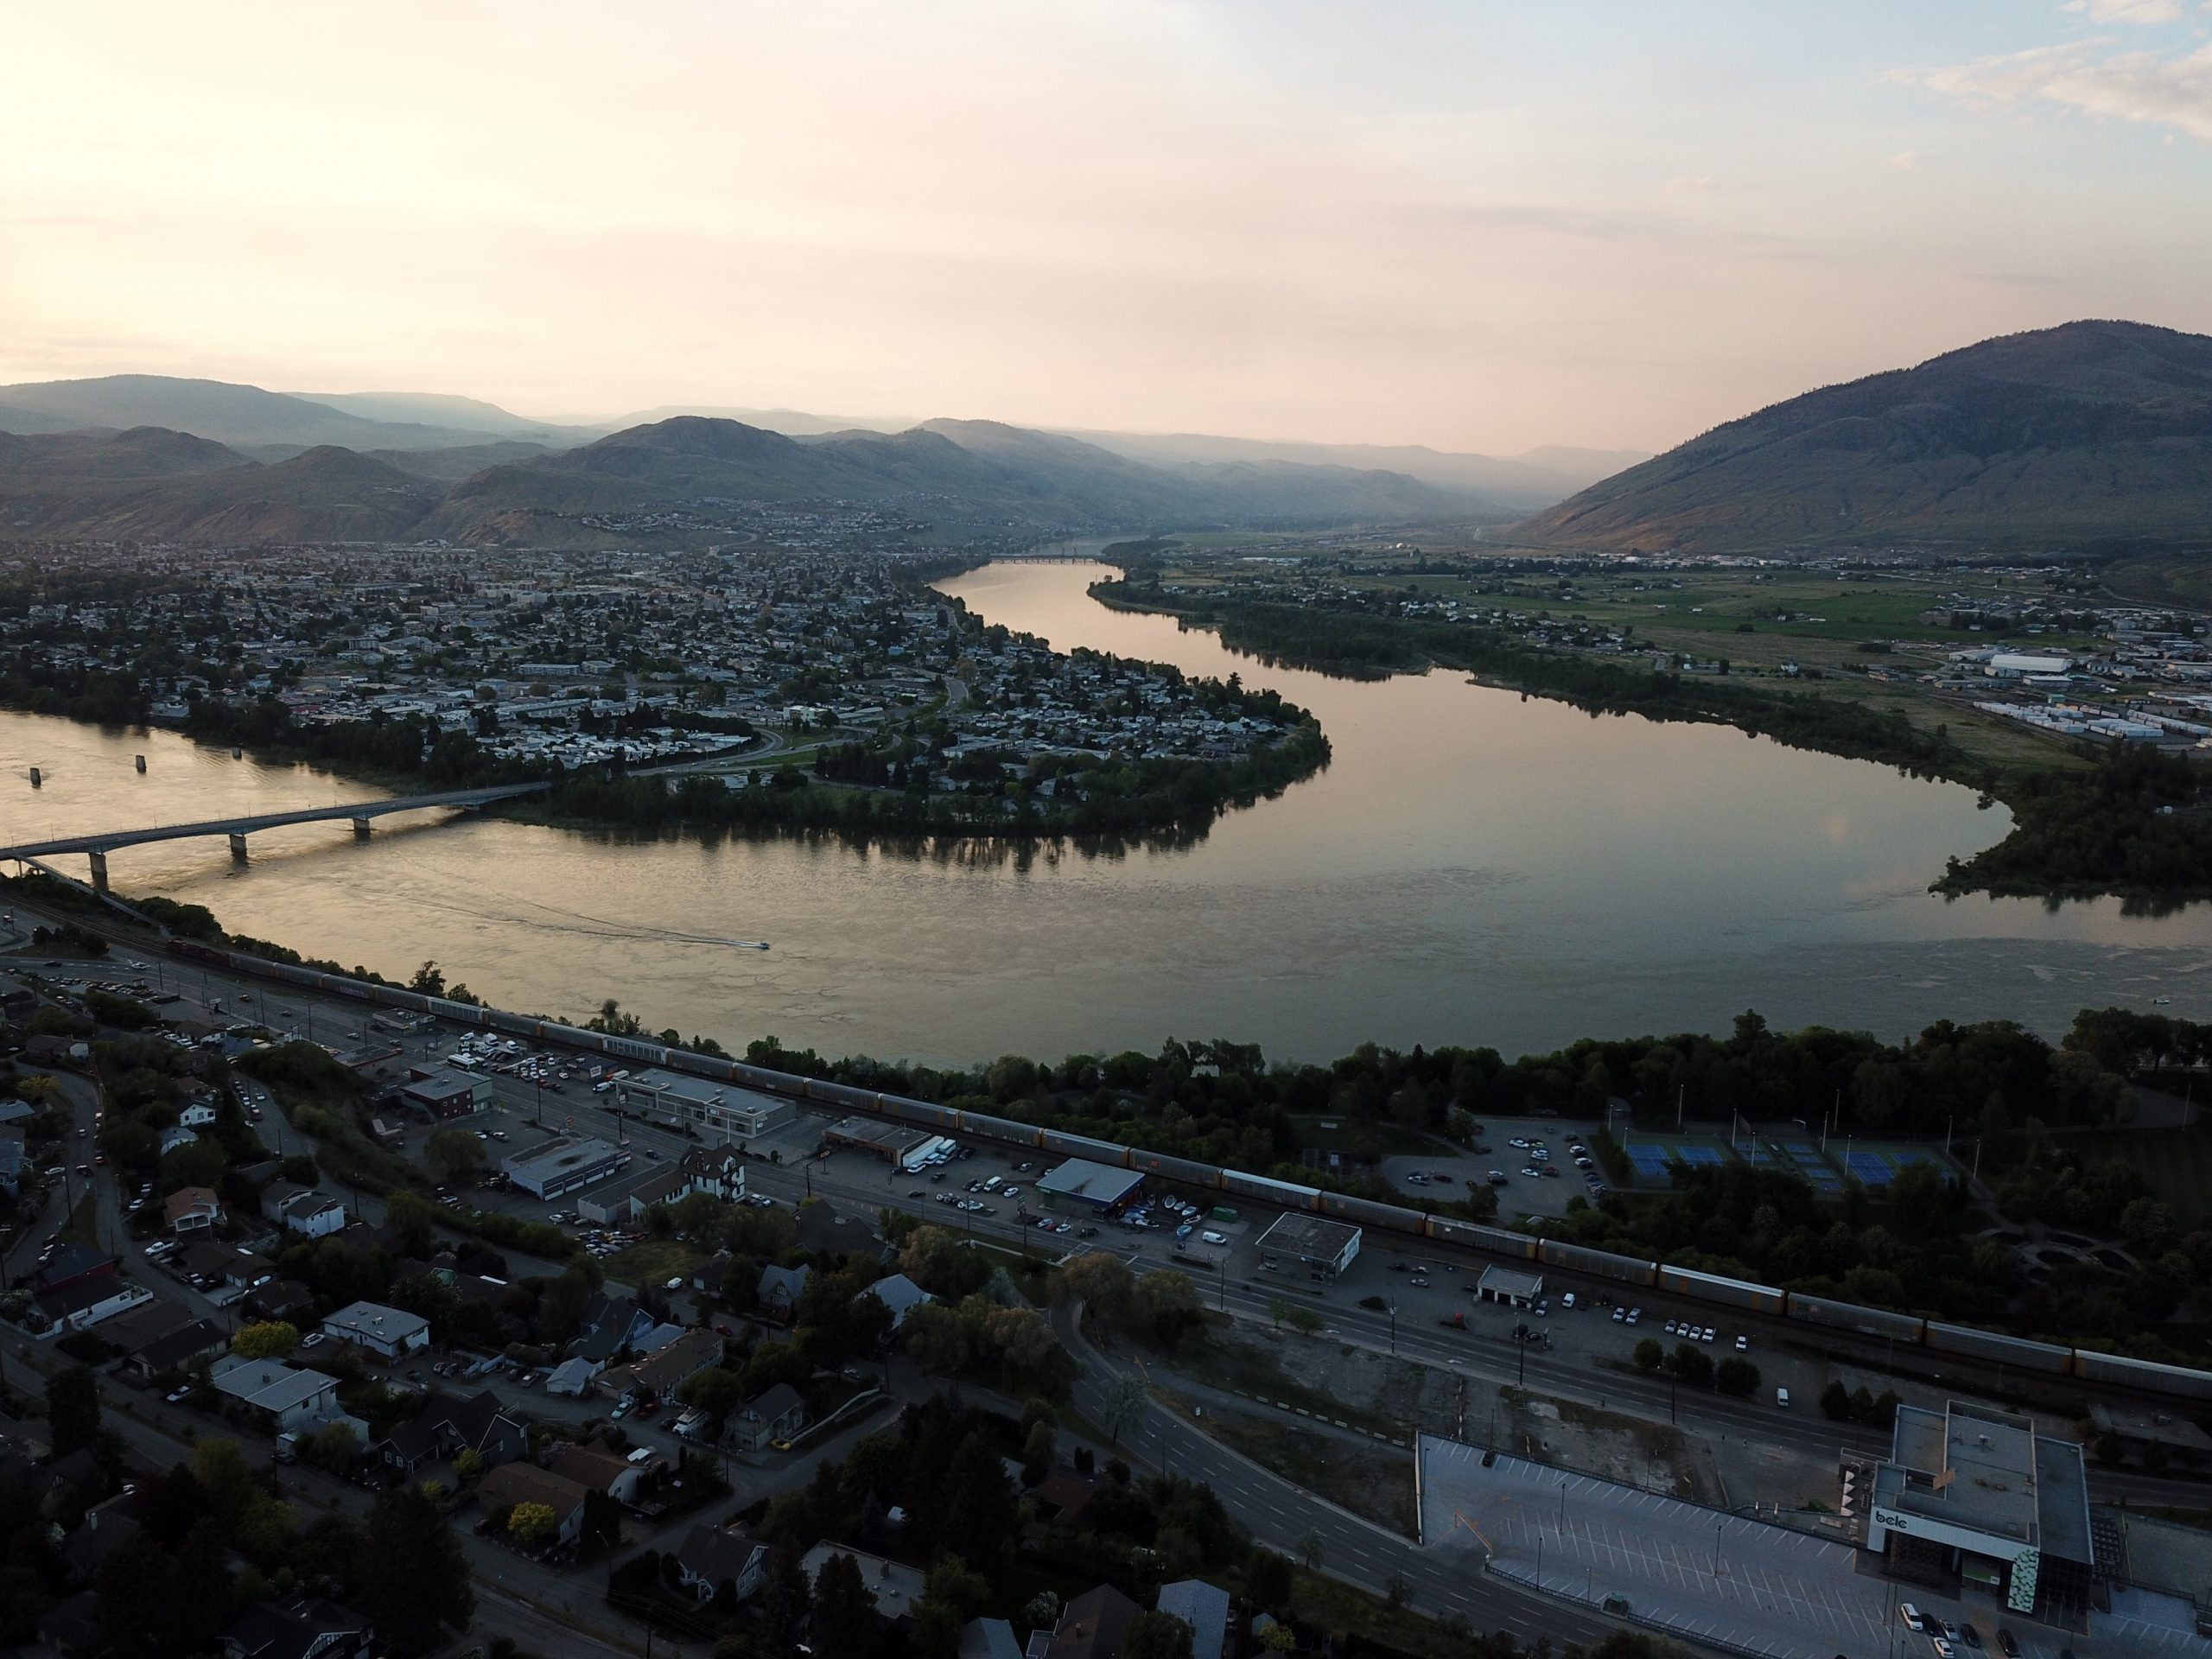 City of Kamloops Still Looking at Another Bridge Crossing the Thompson River